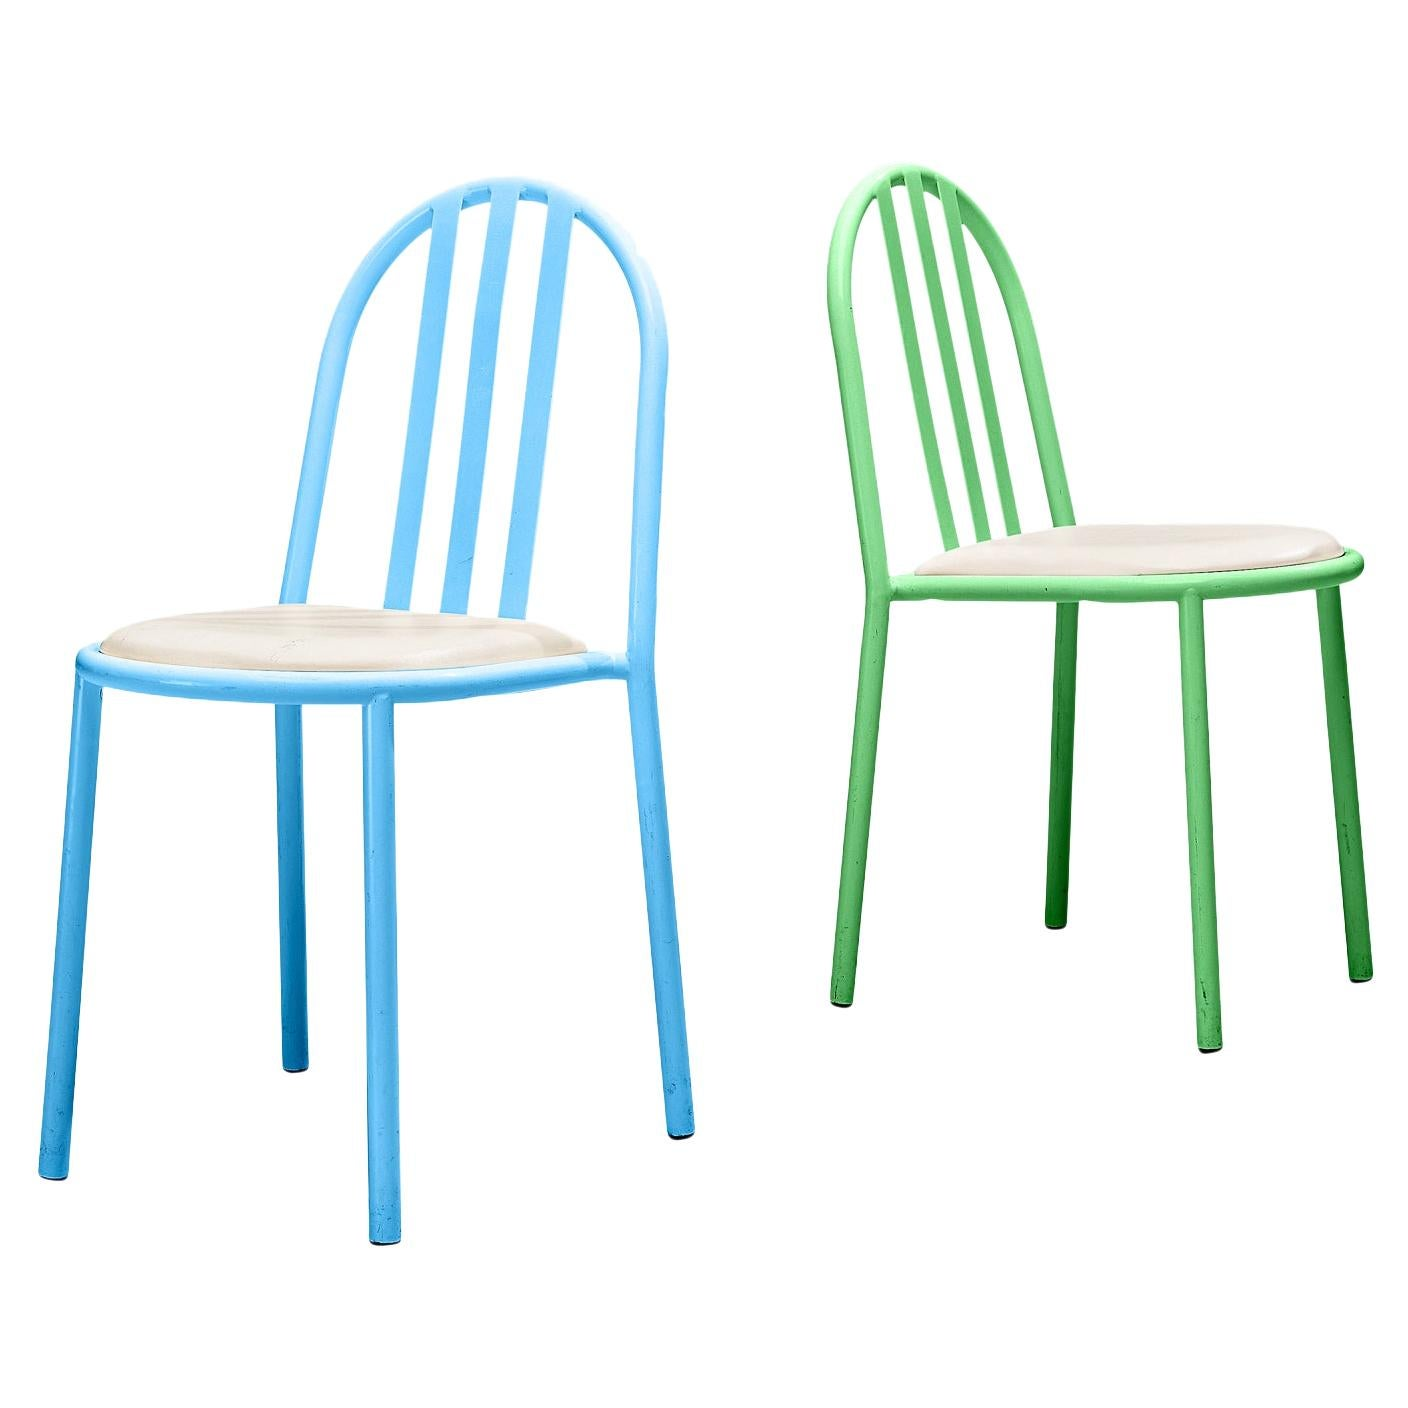 Robert Mallet-Stevens Dining Chairs Model 222 in Colourful Metal